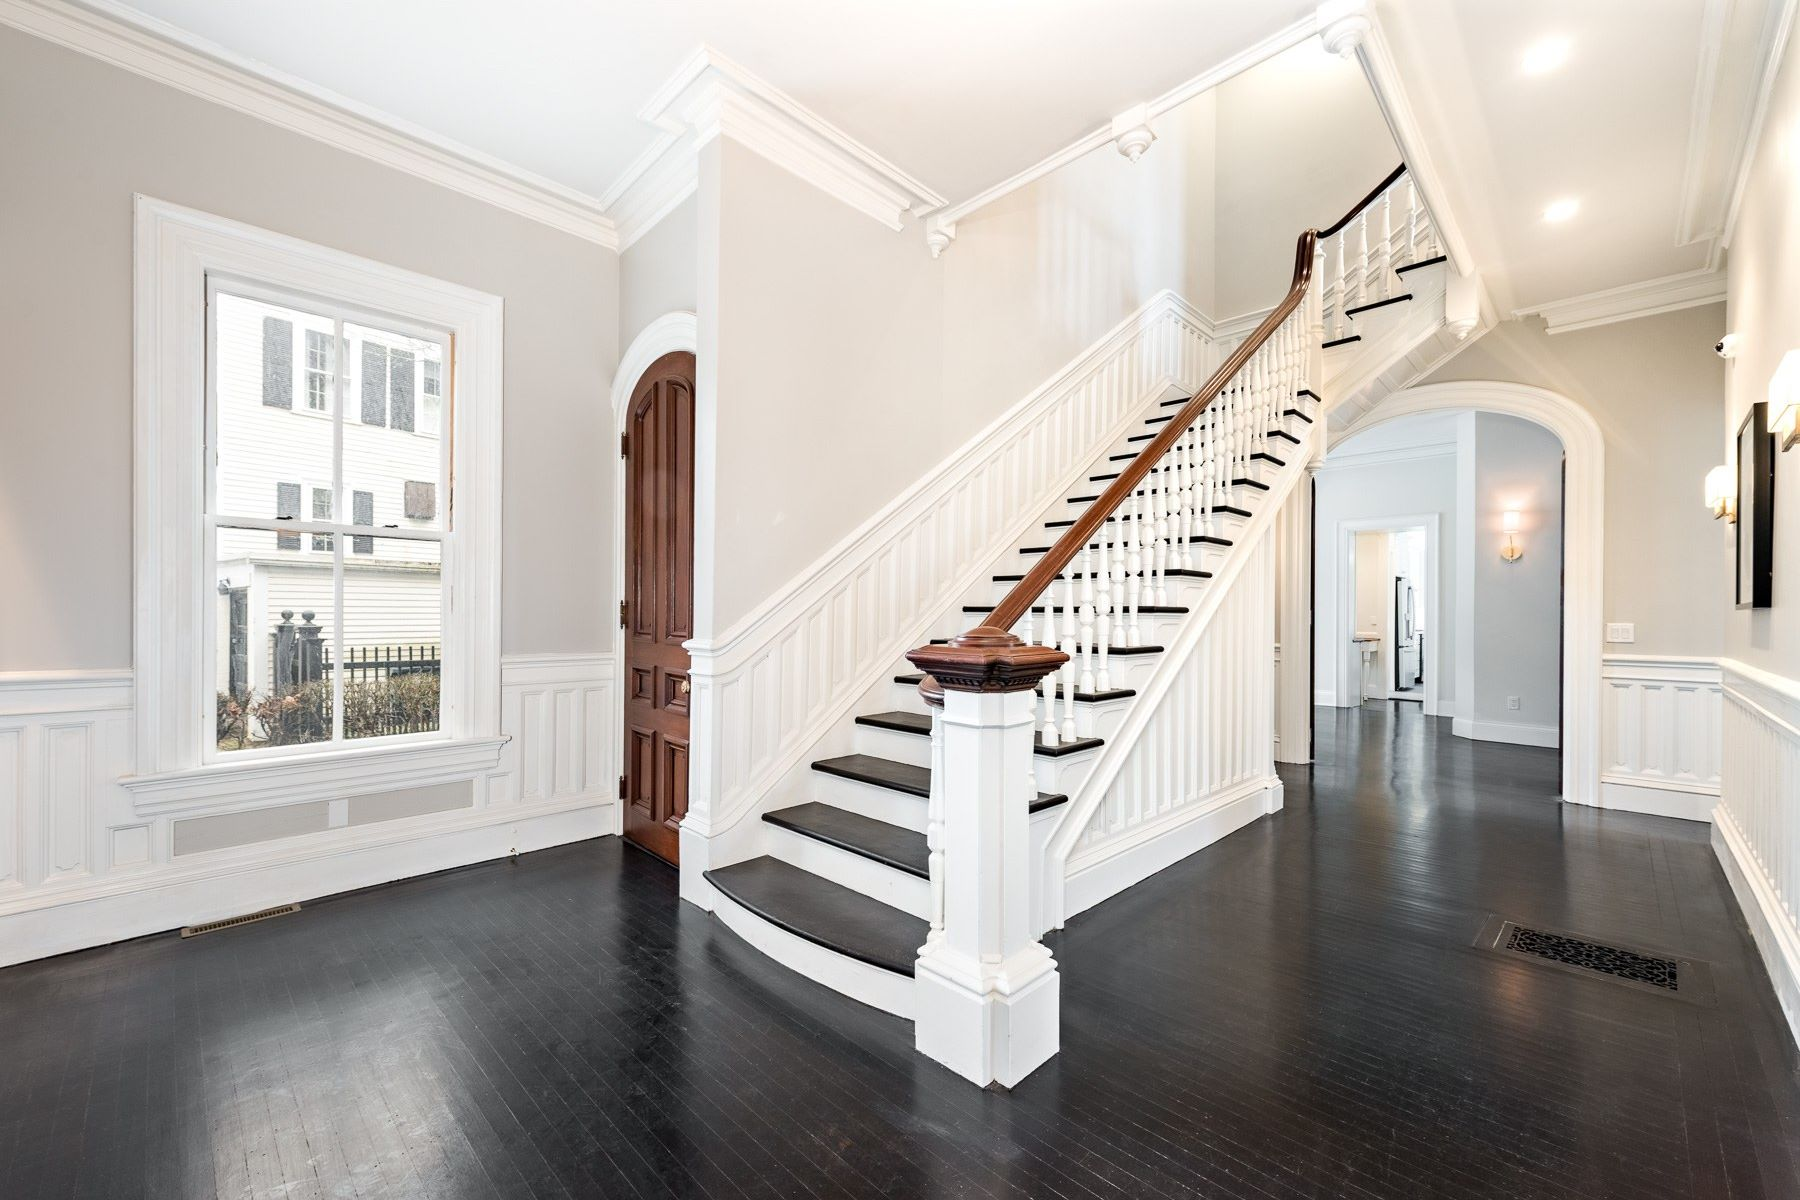 Additional photo for property listing at 13 Cushing Street, #1, East Side Of Providence, RI 13 Cushing Street 1 Providence, Rhode Island 02906 United States